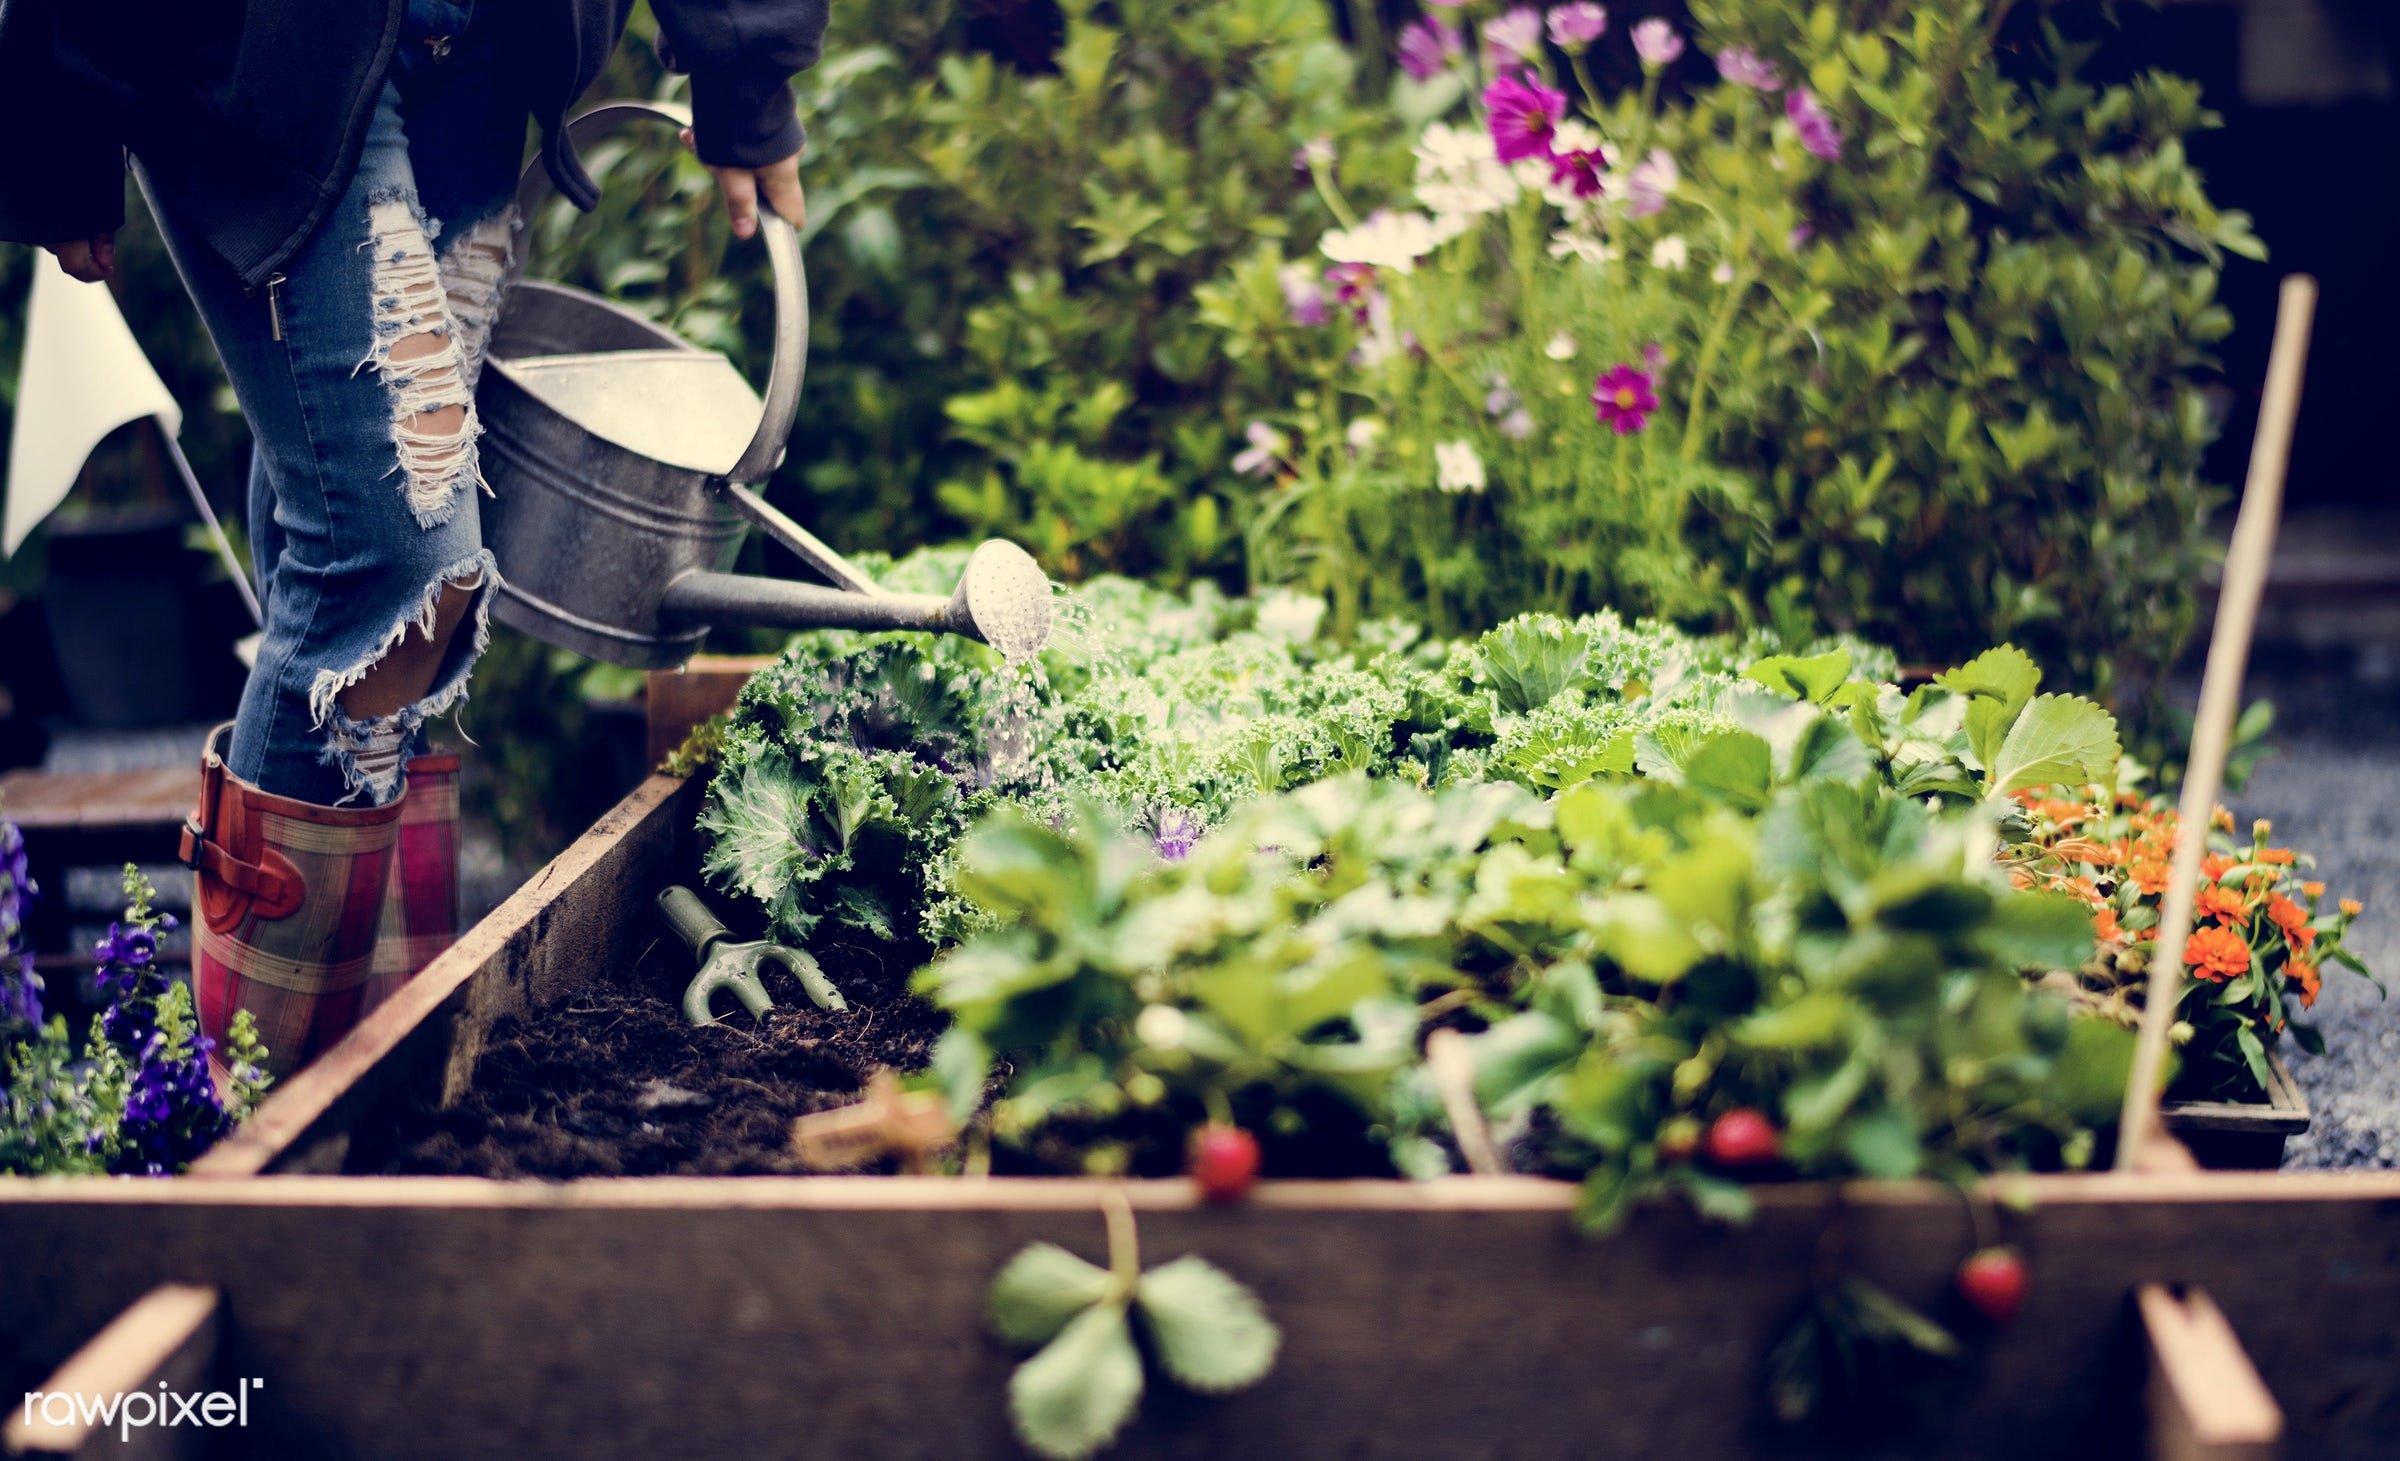 watering, plant, person, plants, leaves, people, hand, farm, tree, farmer, hands, fresh, dirt, wooden box, green, planting,...